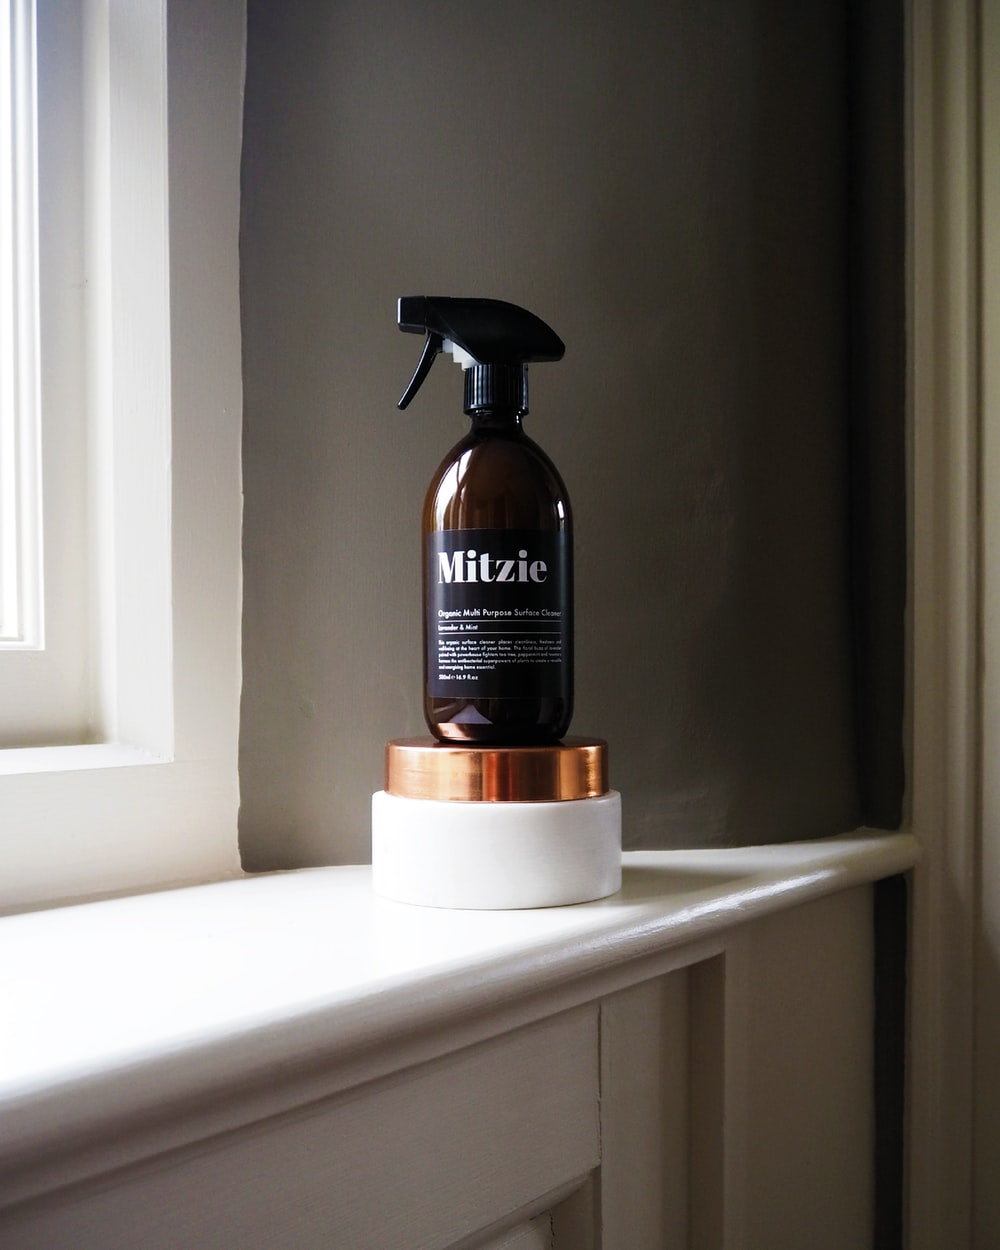 black Mitzie spray bottle near window